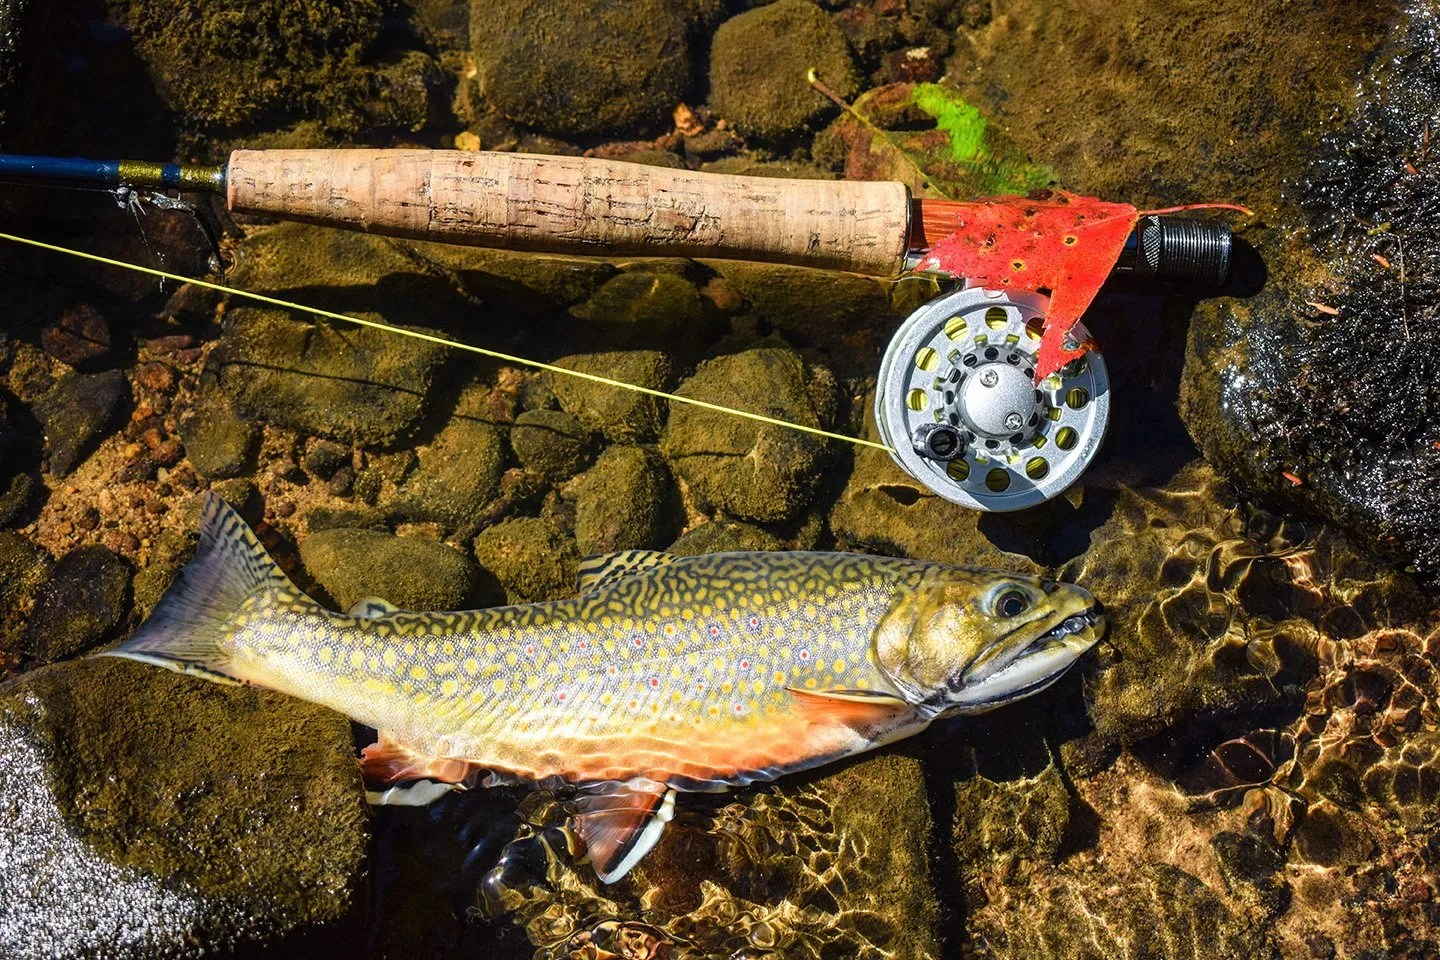 A Southern Appalachian Brook Trout in shallow water next to a fly fishing rod